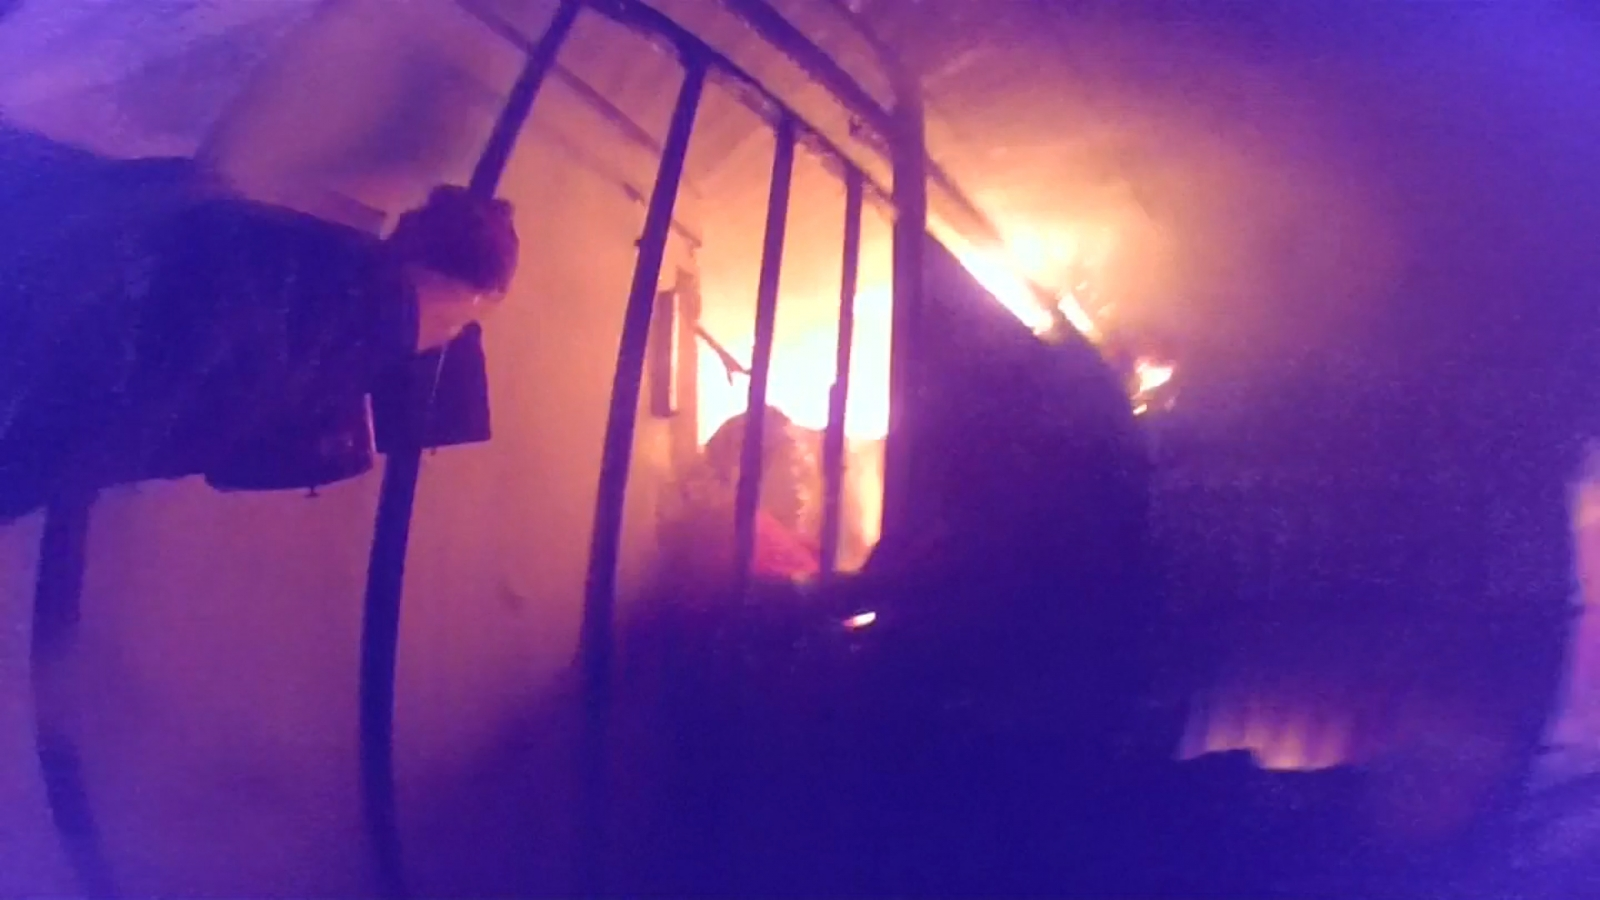 Chile: Dramatic footage shows police rescuing woman from deadly house fire